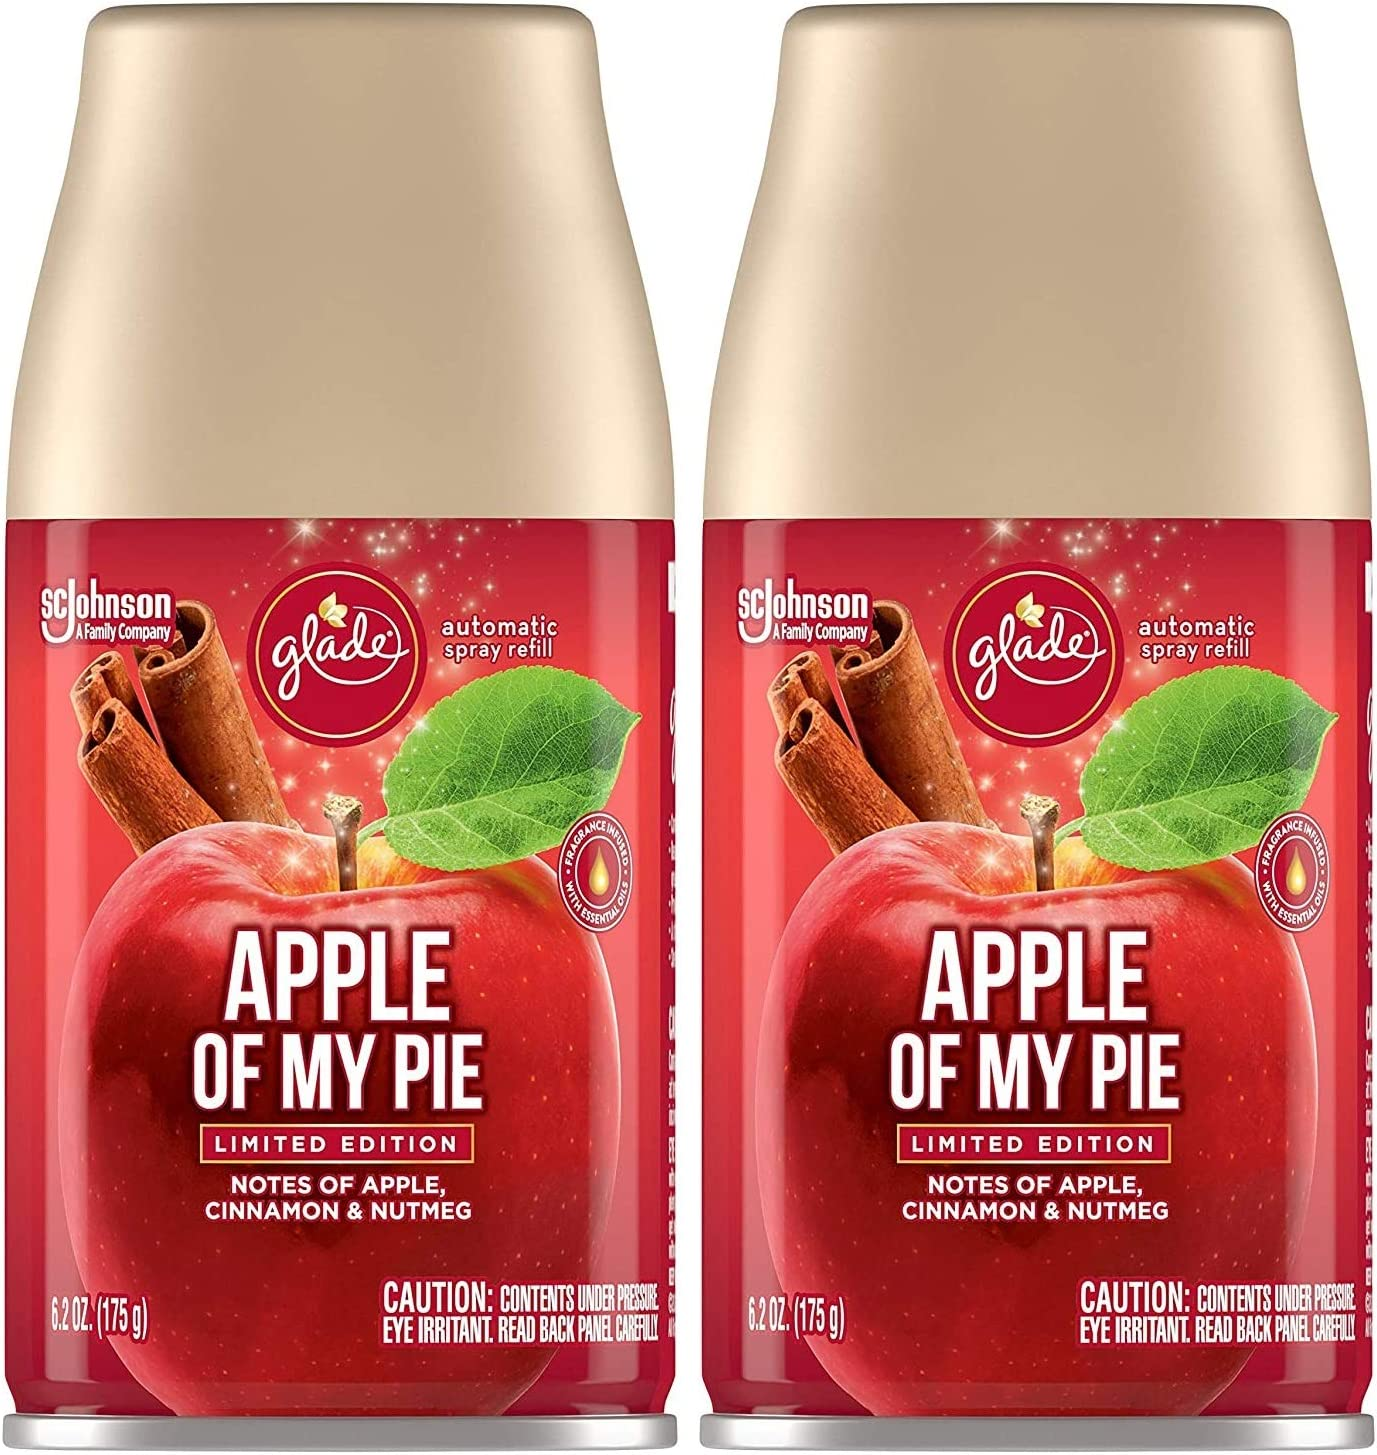 Glade Automatic Spray Refill - Apple of My Pie - Holiday Collection 2020 - Net Wt. 6.2 OZ (175 g) Per Refill Can - Pack of 2 Refill Cans